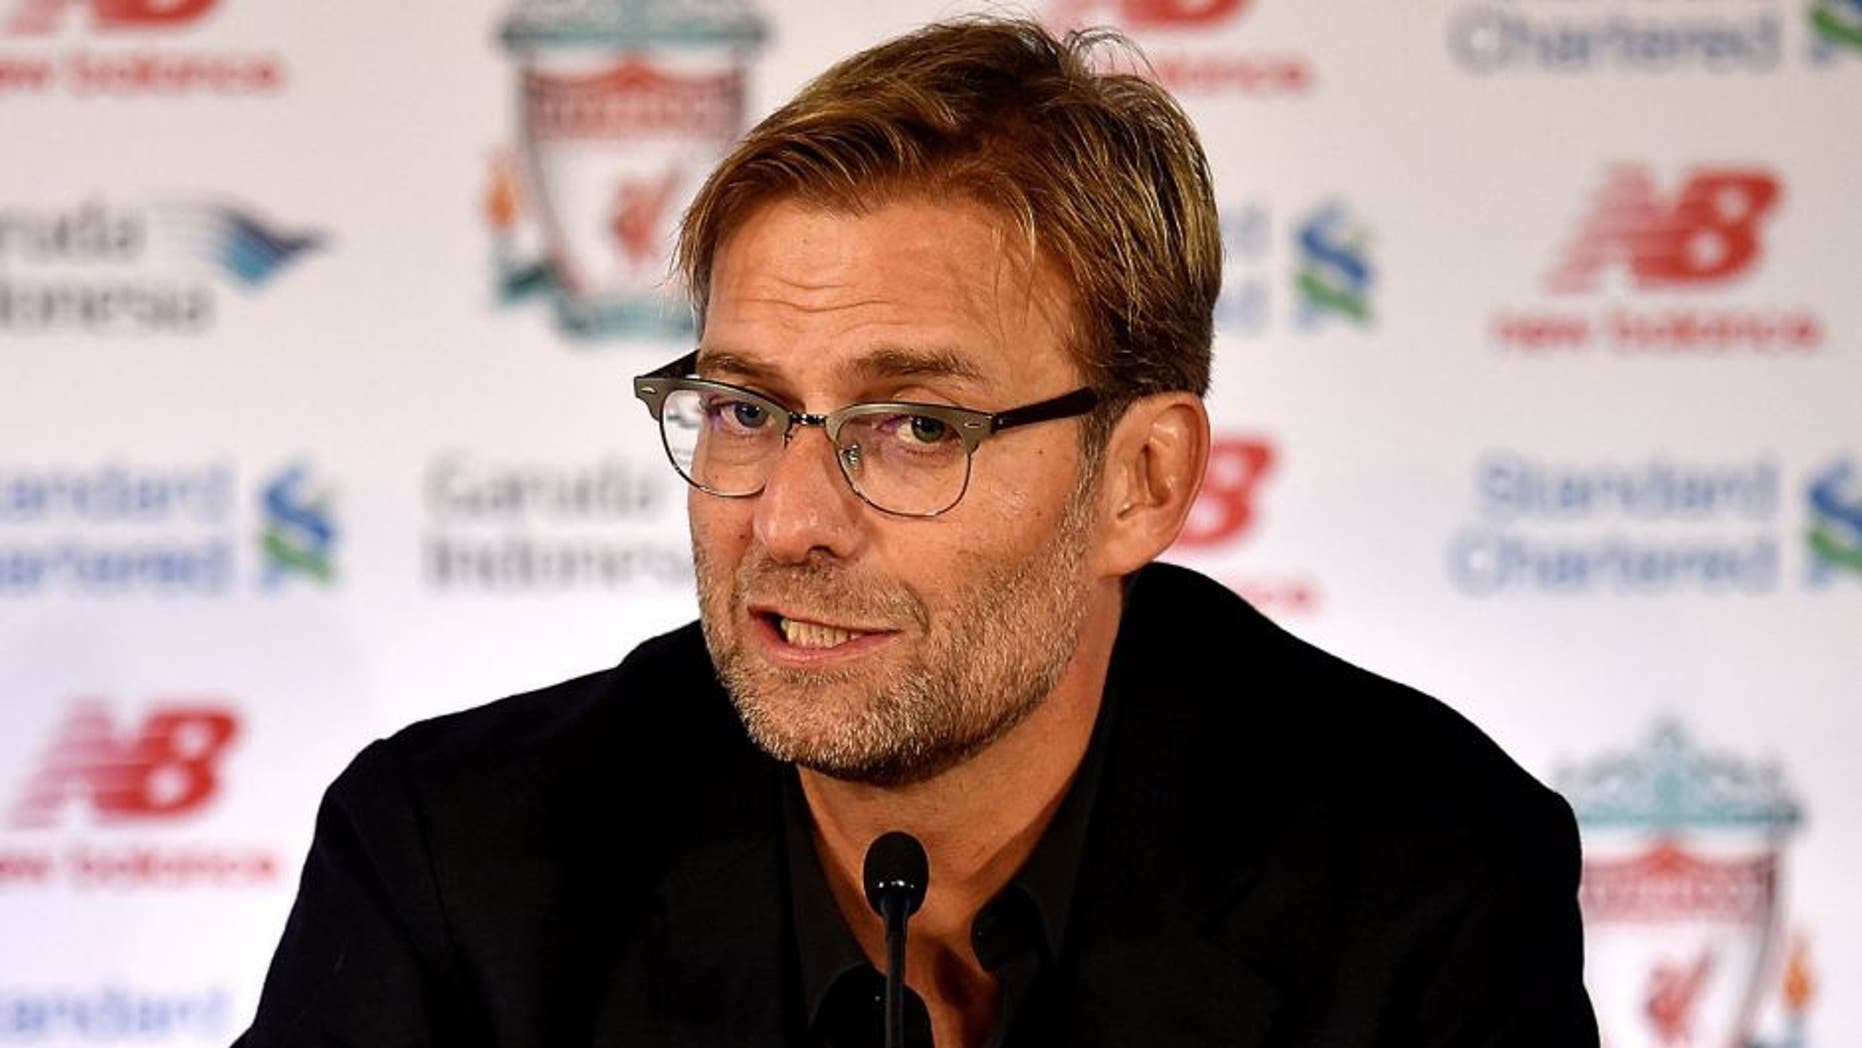 LIVERPOOL, ENGLAND - OCTOBER 09: (THE SUN OUT, THE SUN ON SUNDAY OUT) Jurgen Klopp new manager of Liverpool during a press conference at Anfield on October 9, 2015 in Liverpool, England. (Photo by Andrew Powell/Liverpool FC via Getty Images)